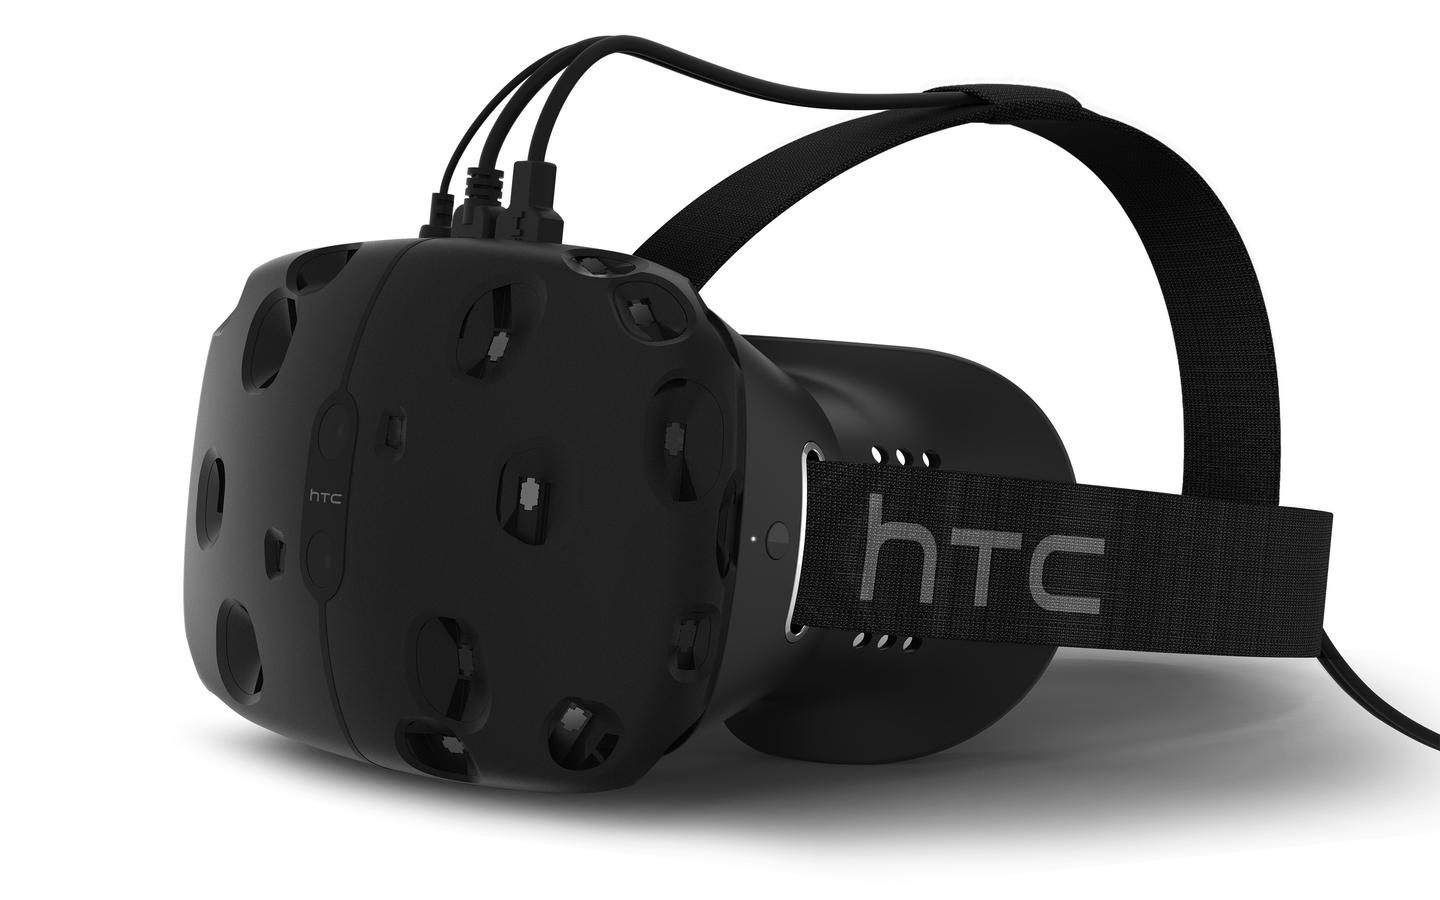 The developer edition of the HTC Vive